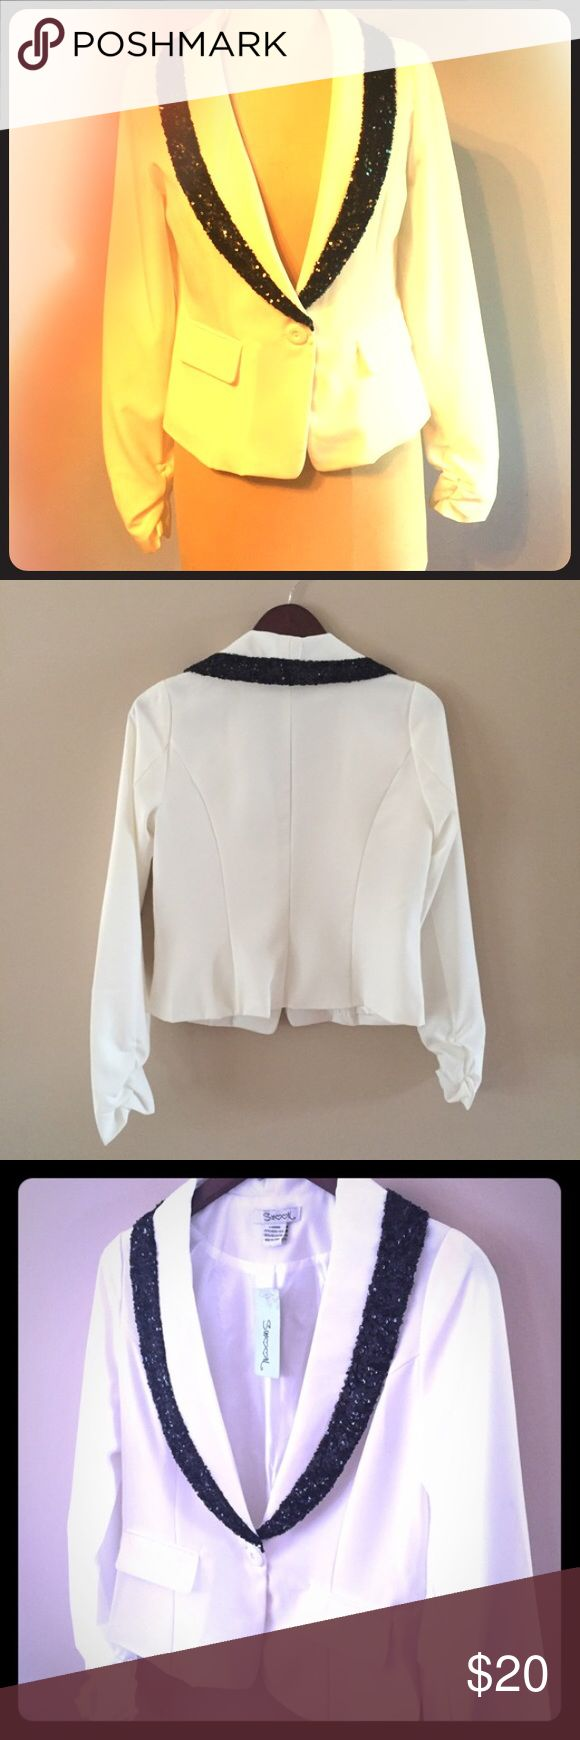 White blazer with black sequins Super cute and chic this blazer is white with black sequin accent.  BNWT Jackets & Coats Blazers